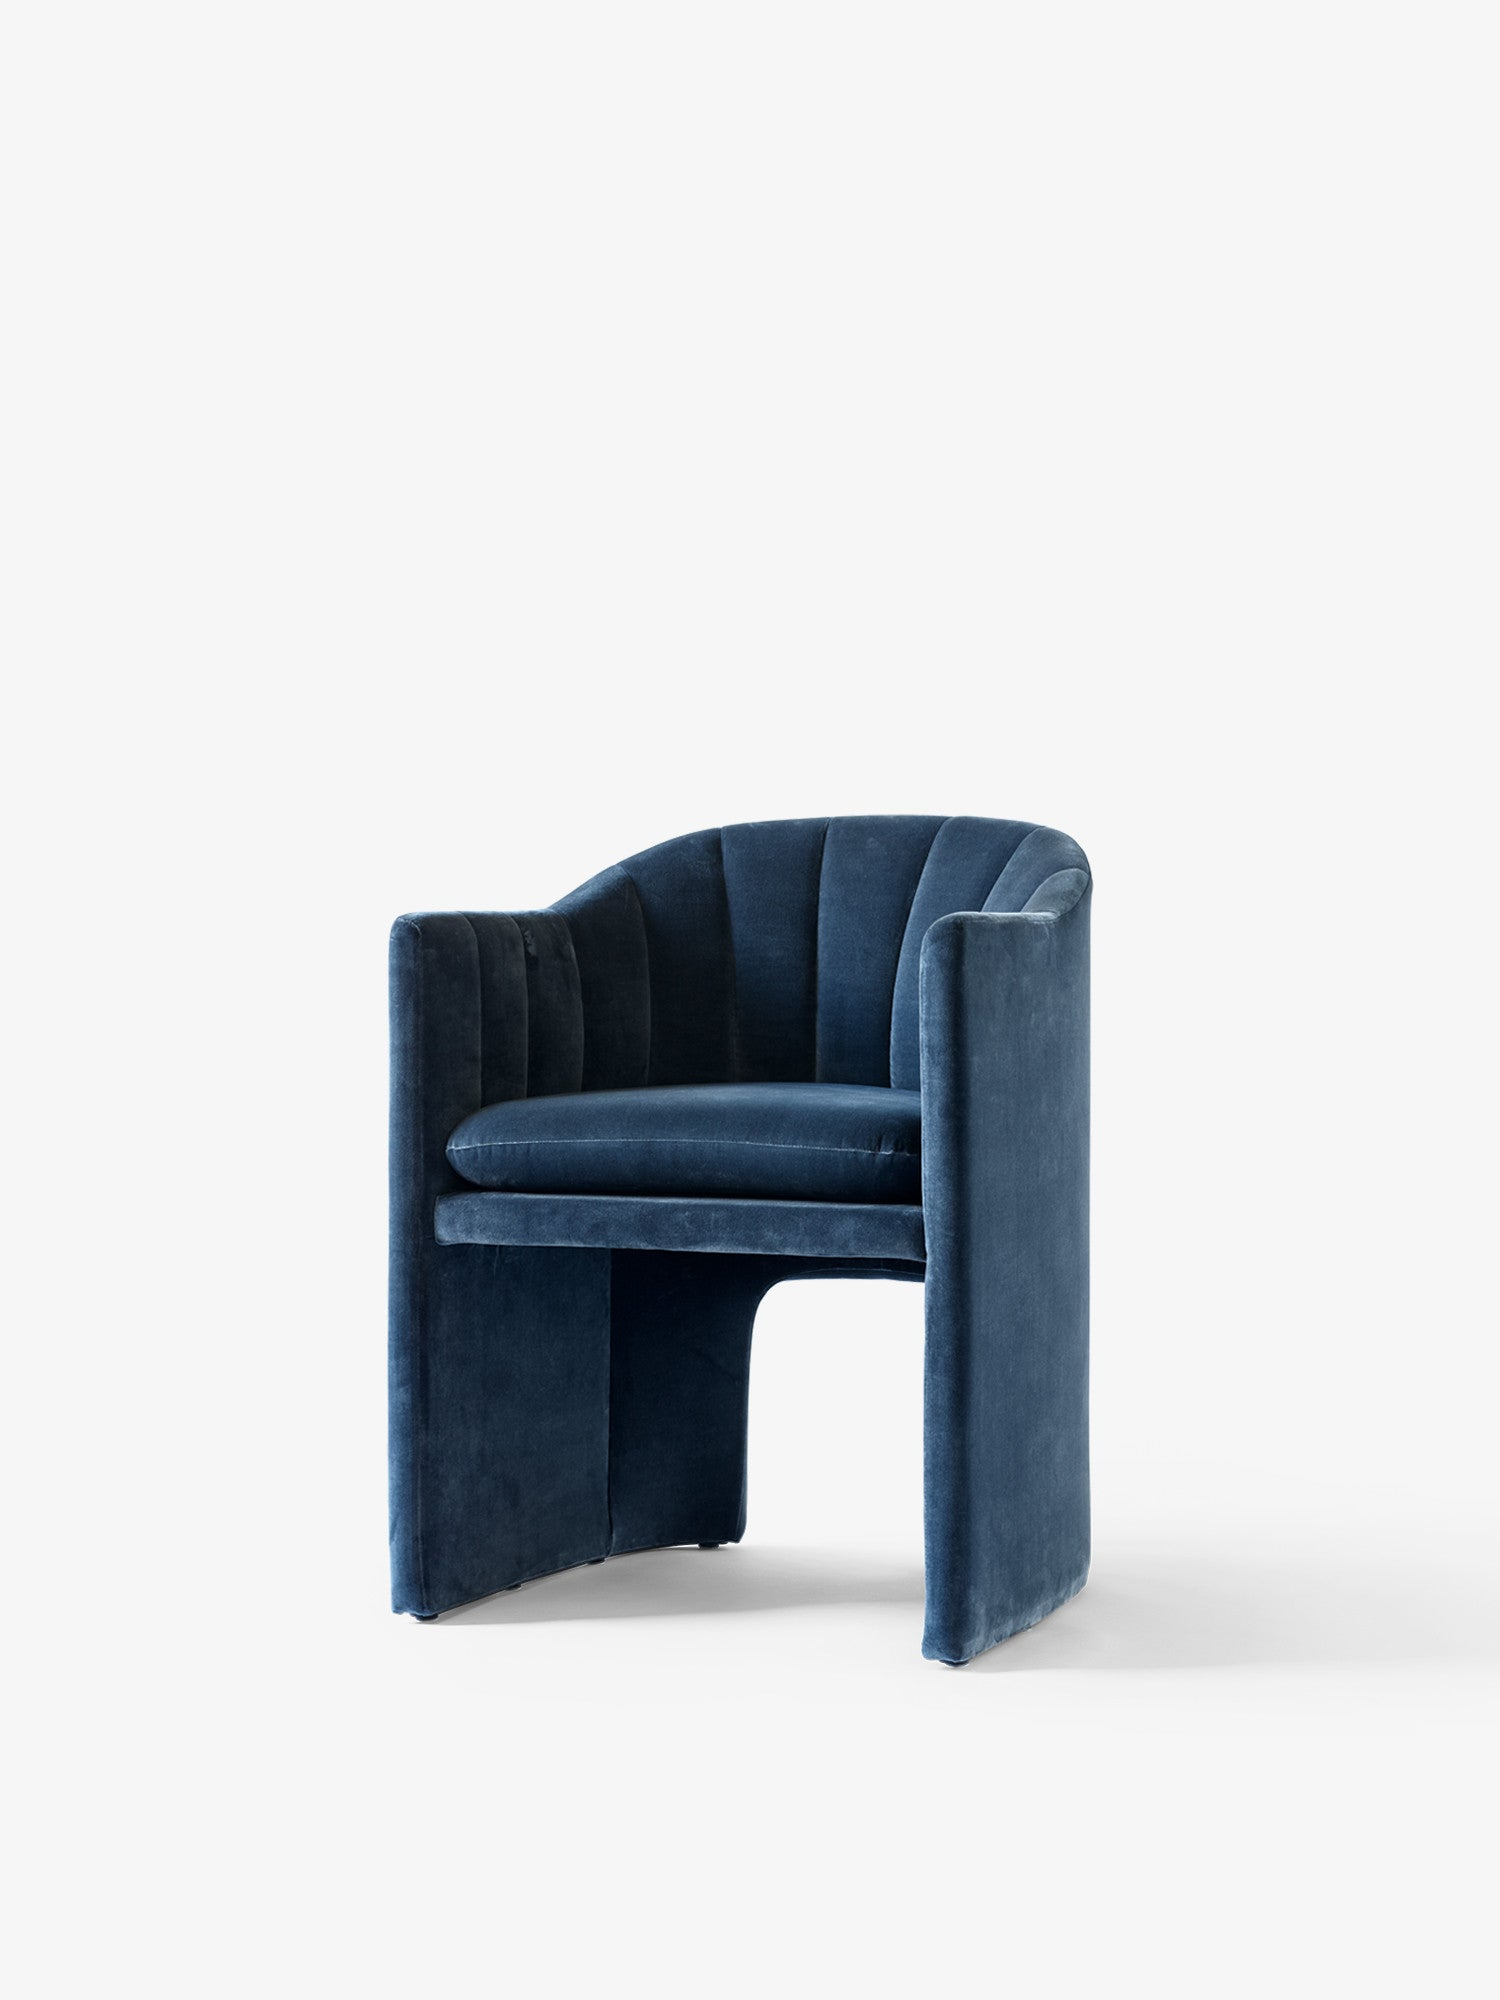 Loafer SC24 Dining Chair